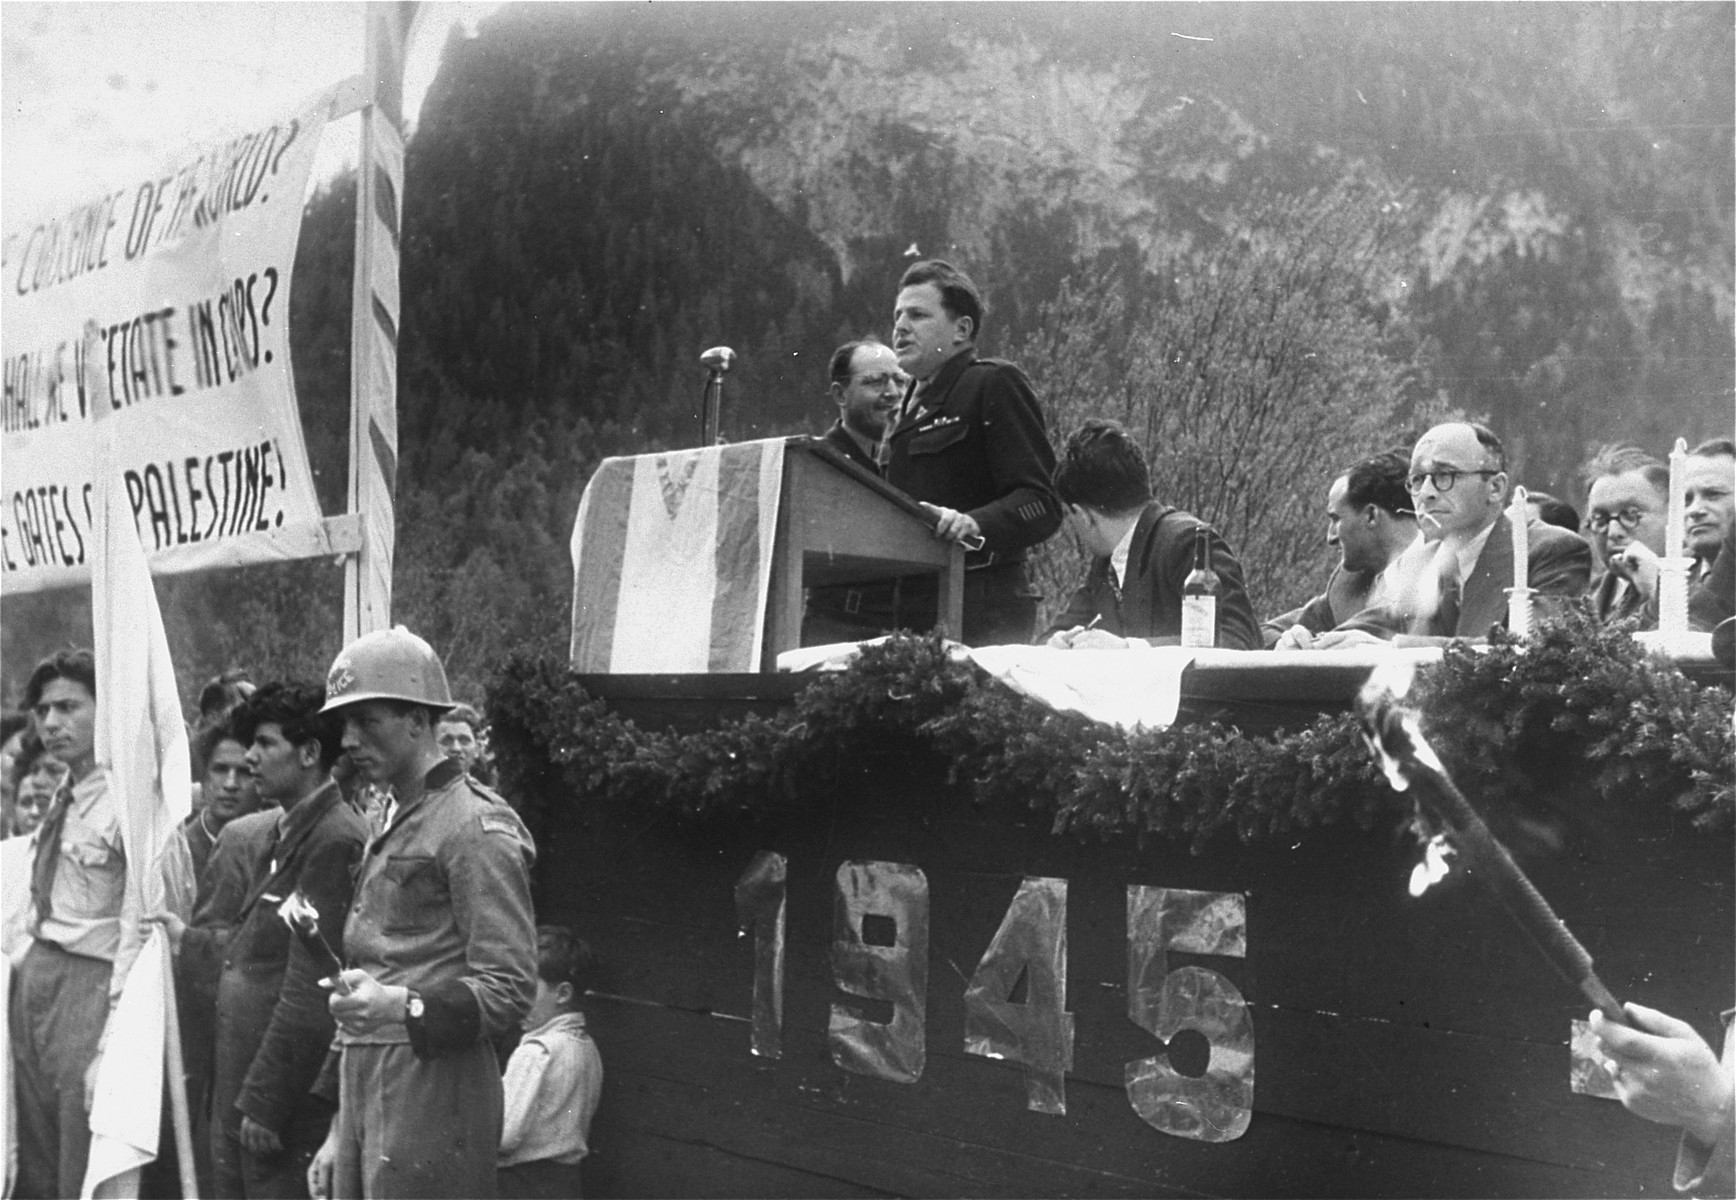 A speaker addresses an outdoor assembly of Jewish DPs held in the Mittenwald displaced persons camp to protest British immigration policy in Palestine and to commemorate the death march from Dachau to Tyrol.